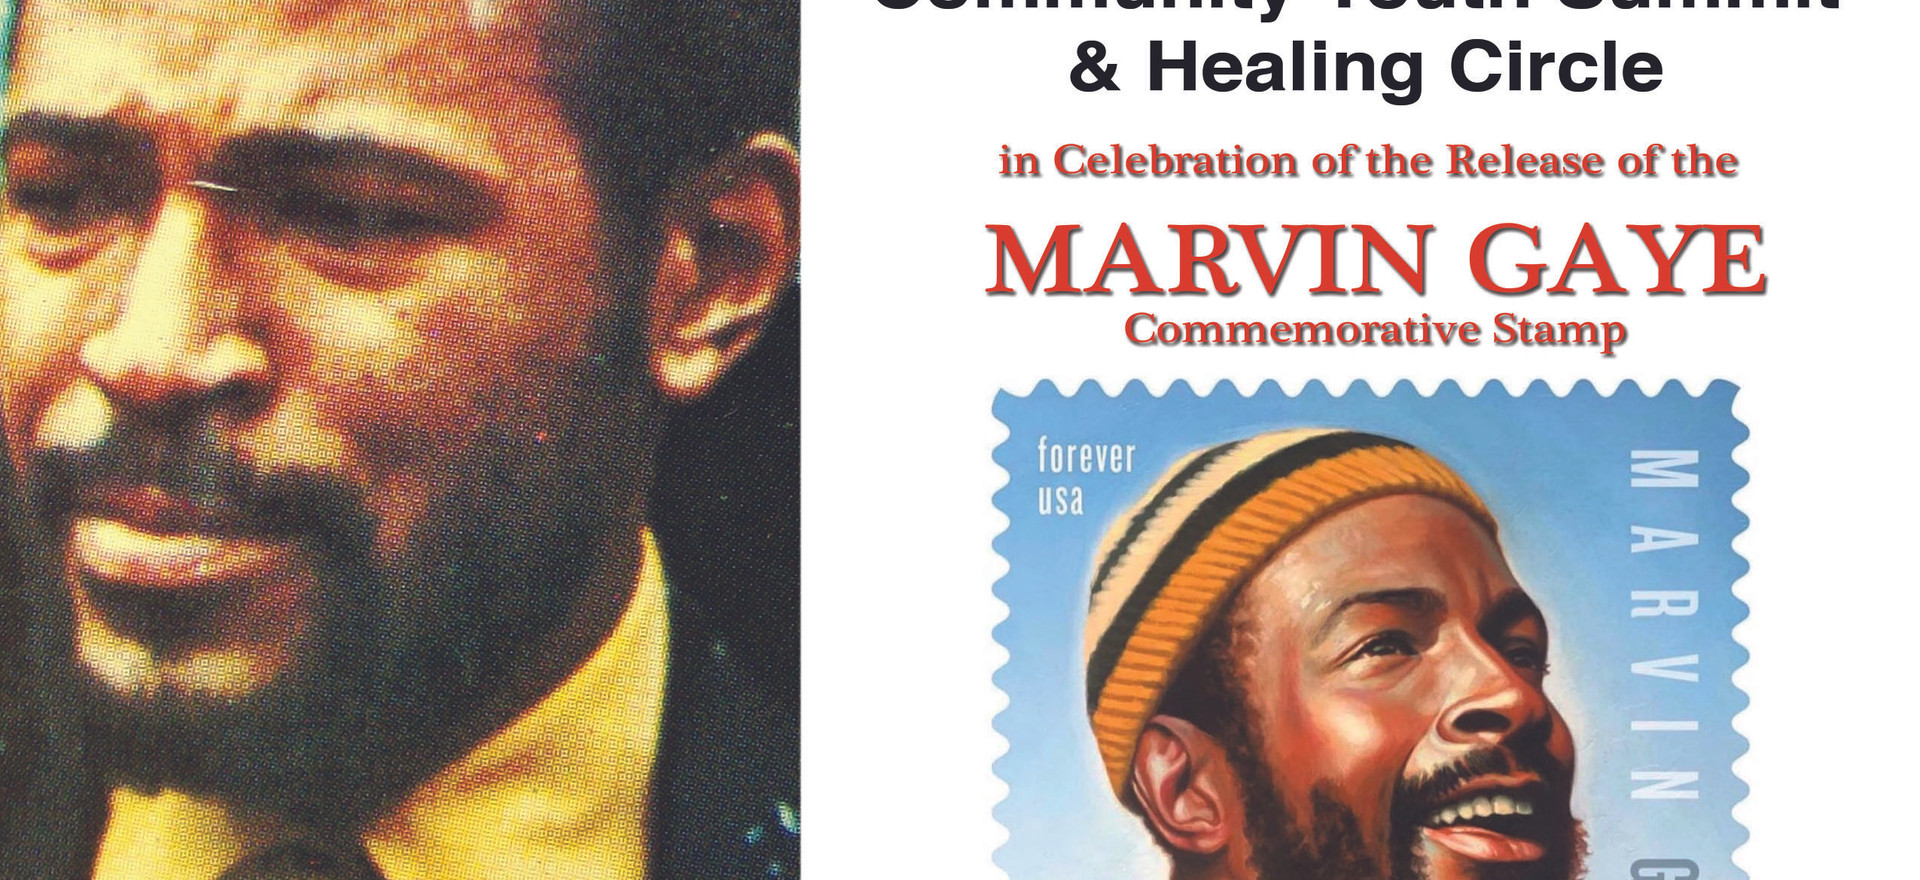 Marvin Gaye - Youth Forum final.jpg